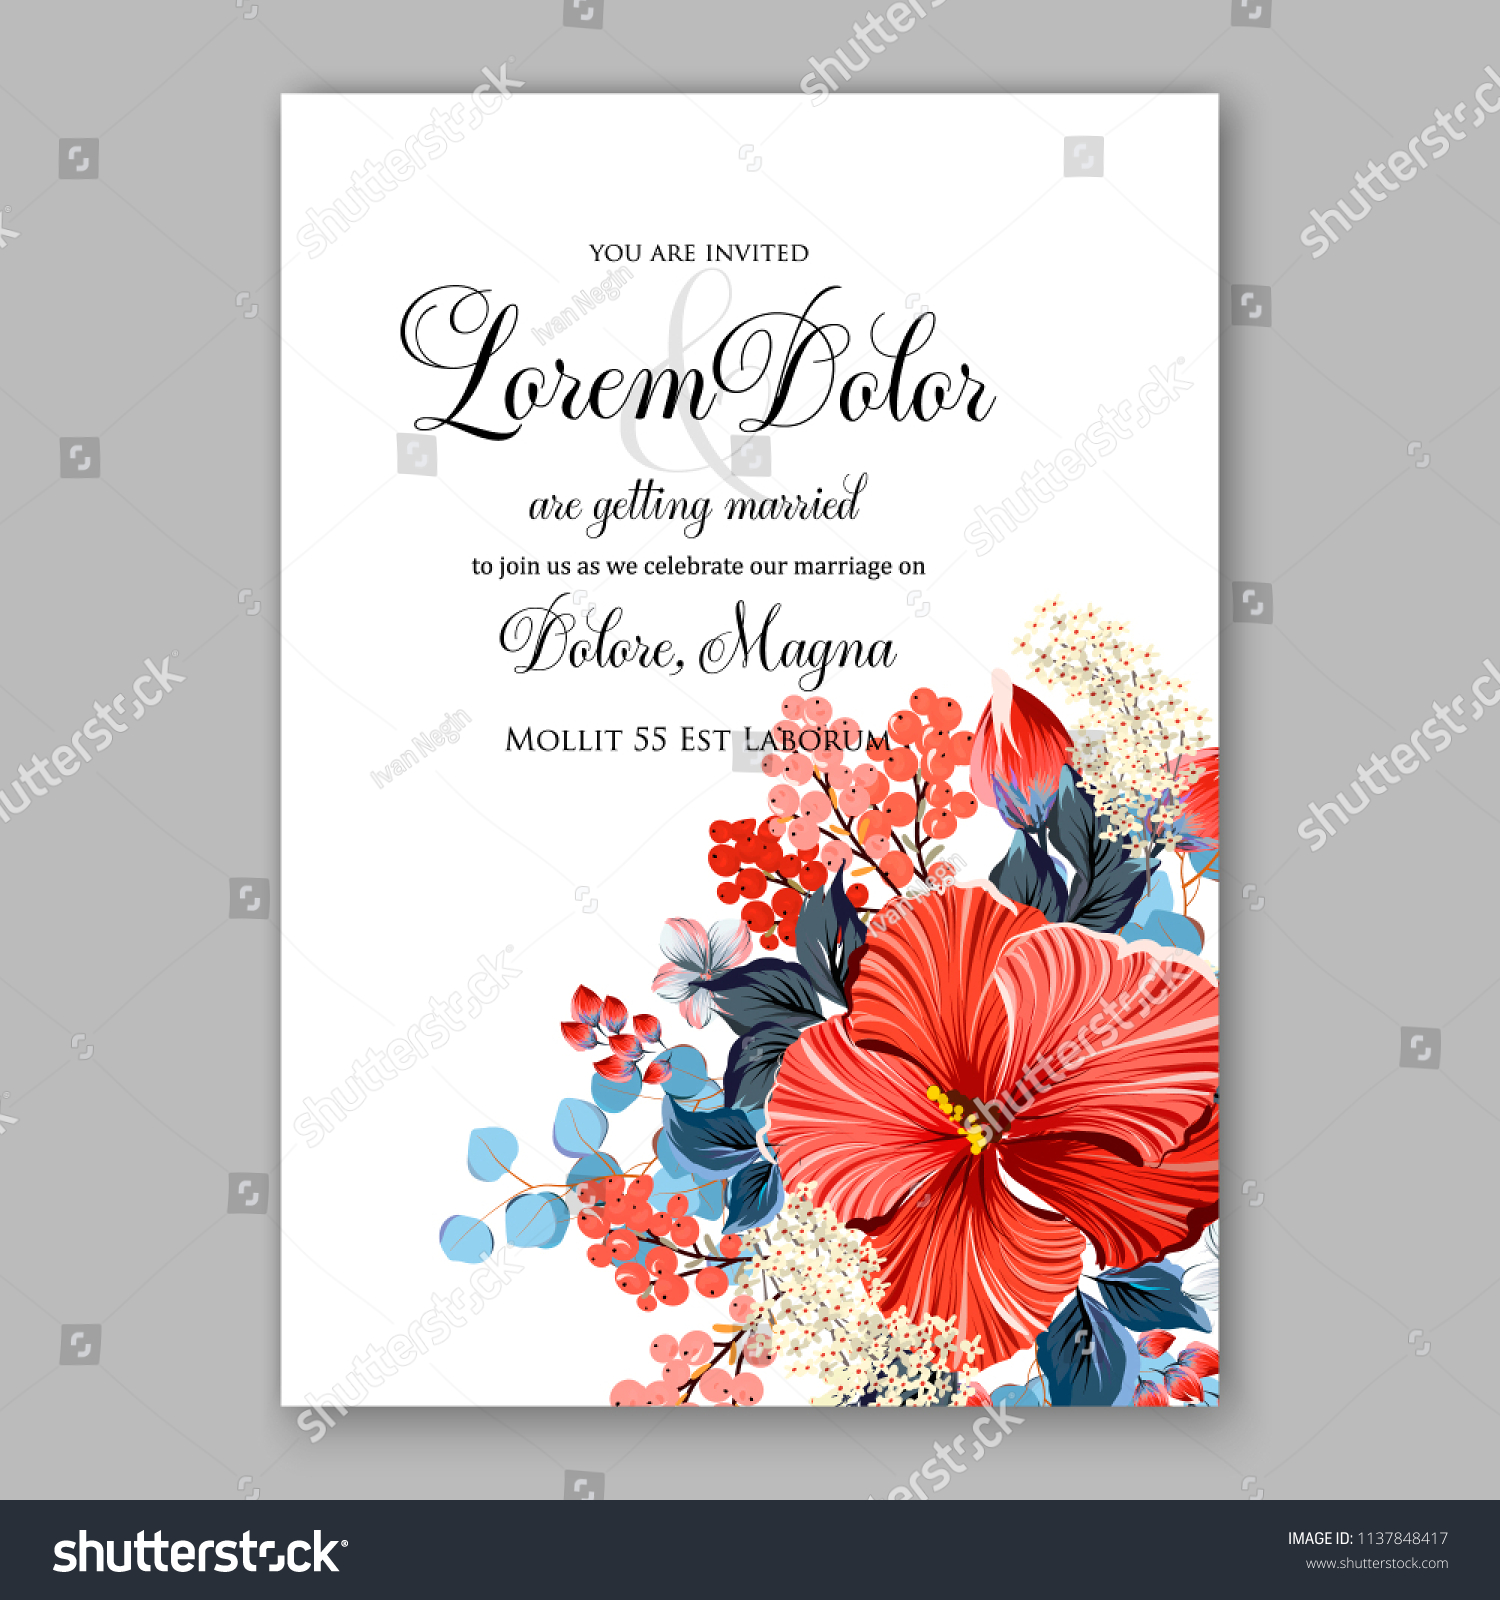 Floral Wedding Invitation Invite Elegant Card Stock Vector (Royalty ...